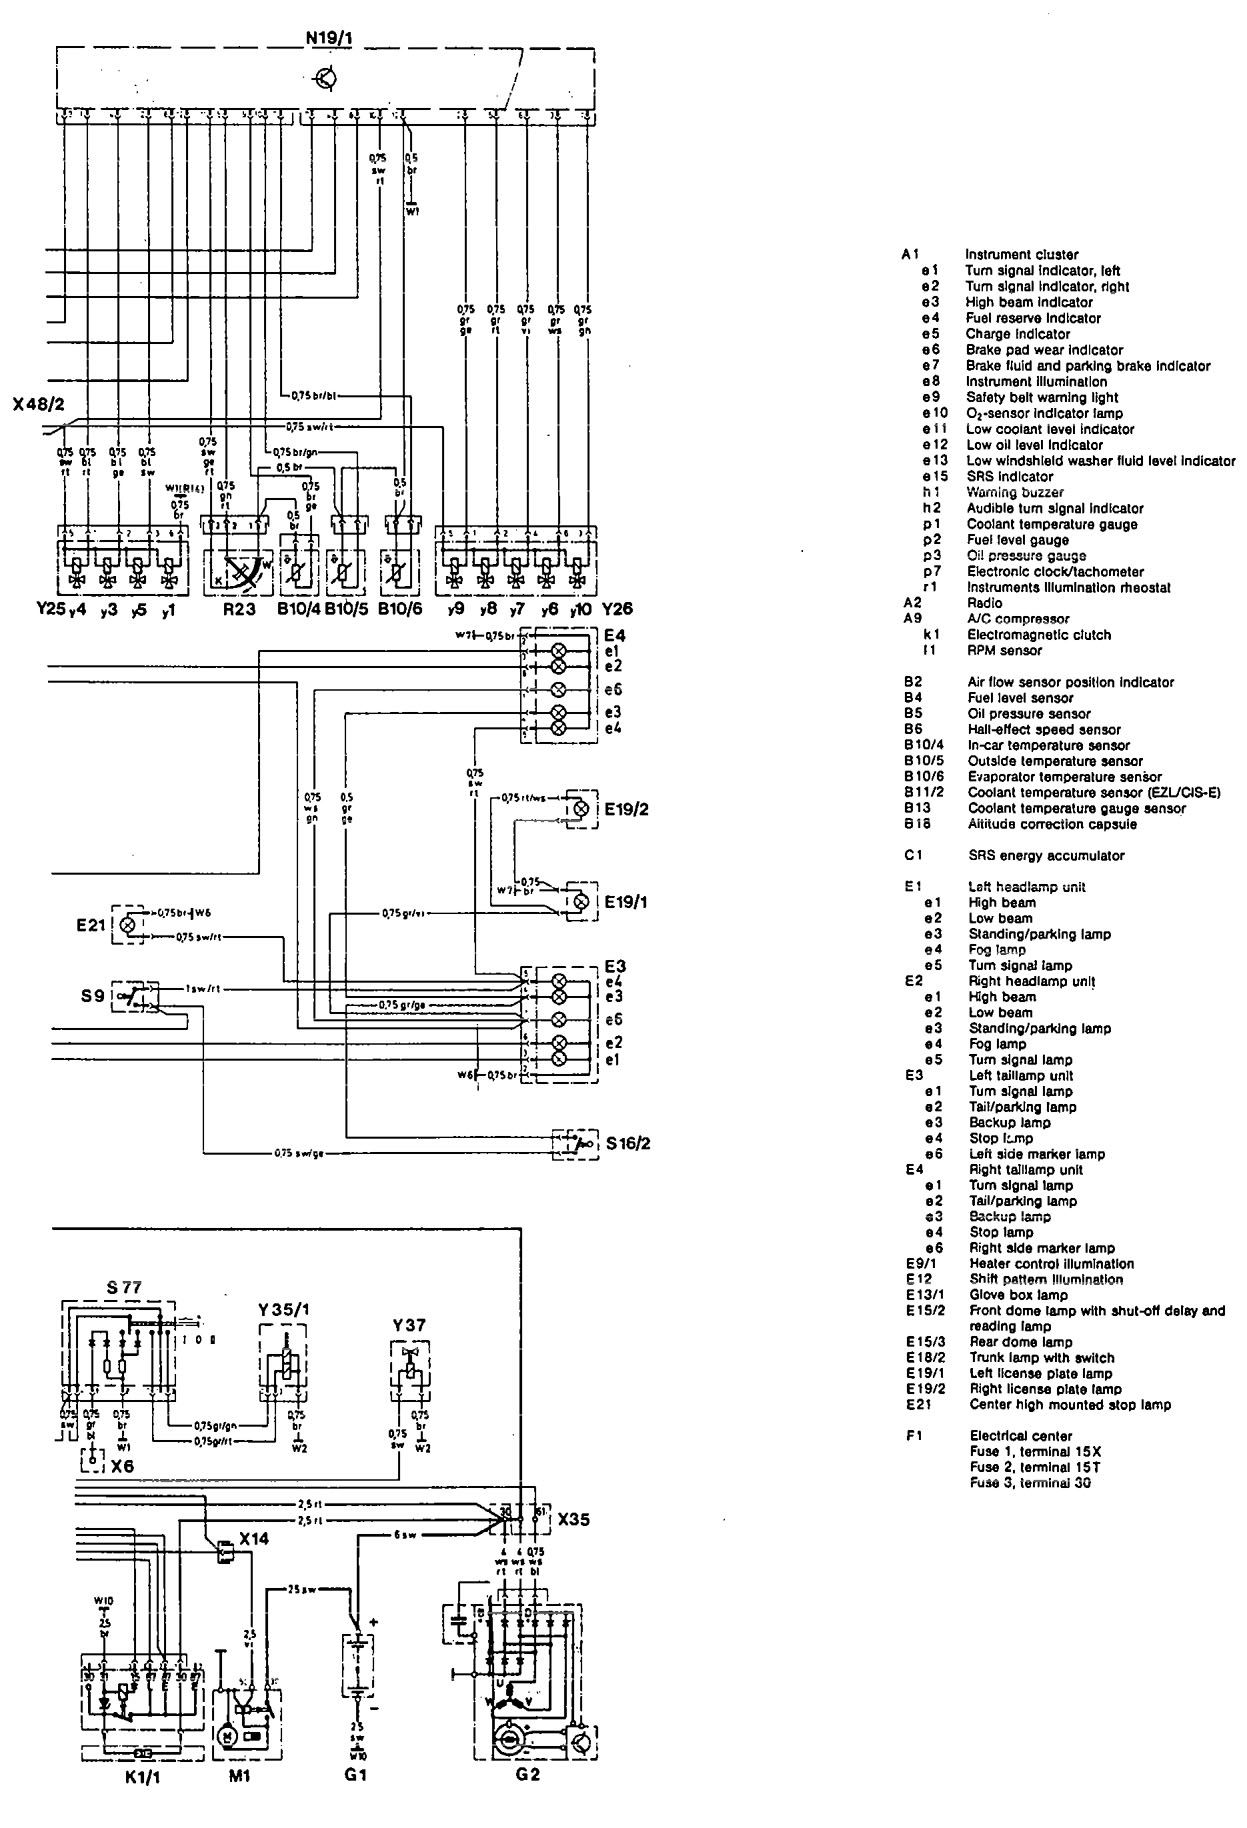 Mercedes Benz 190e Wiring Diagram Auto Electrical Lt1 Computer Related With